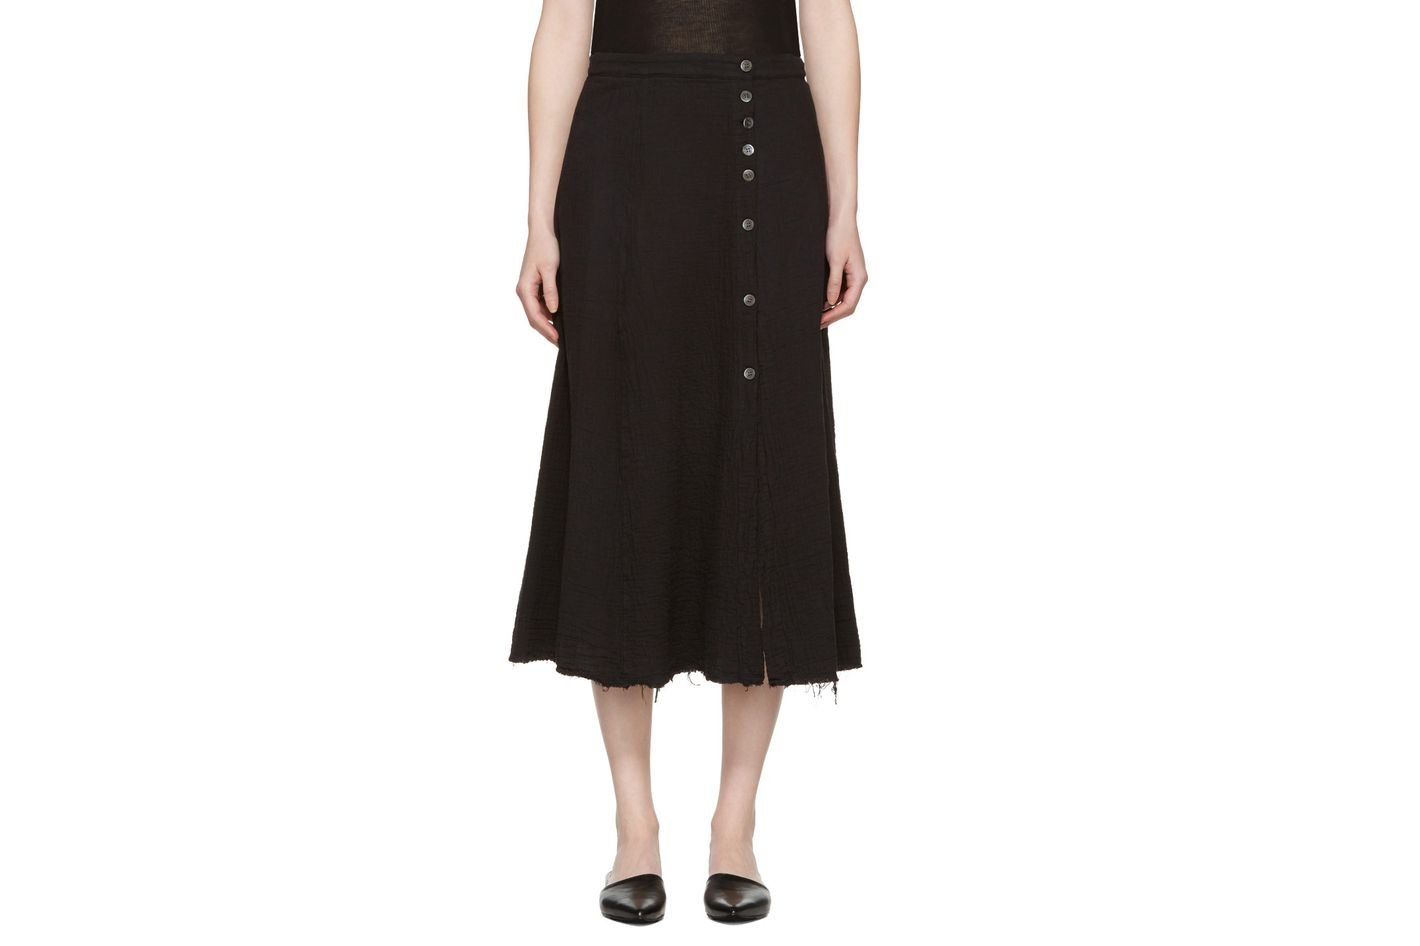 Raquel Allegra Safari Skirt